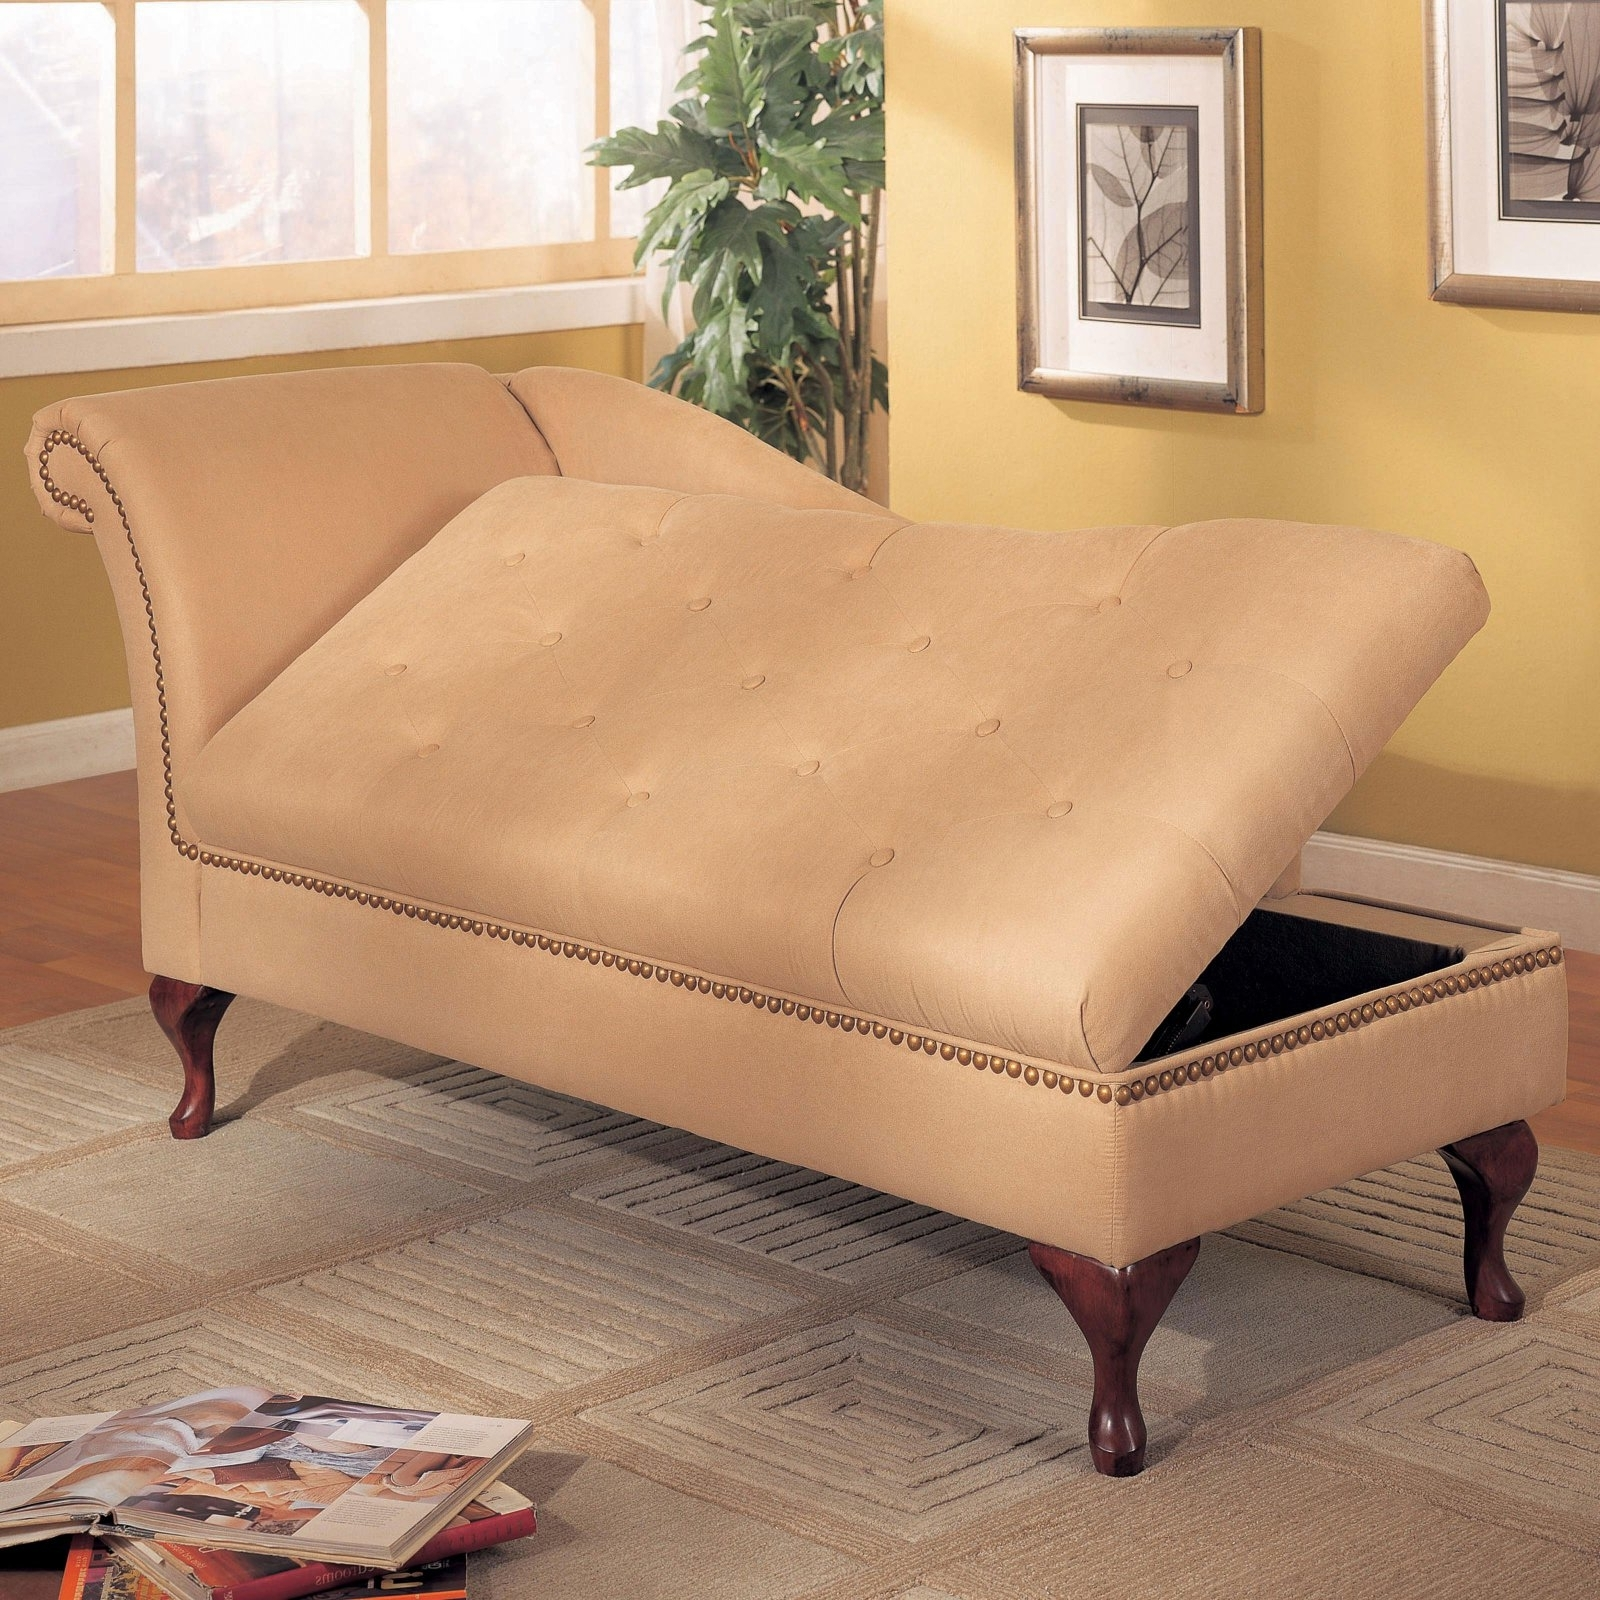 Best And Newest Indoor Chaise › Indoor Chaise Lounge With Storage Chaise Lounges With Chaise Lounges With Storage (View 11 of 15)